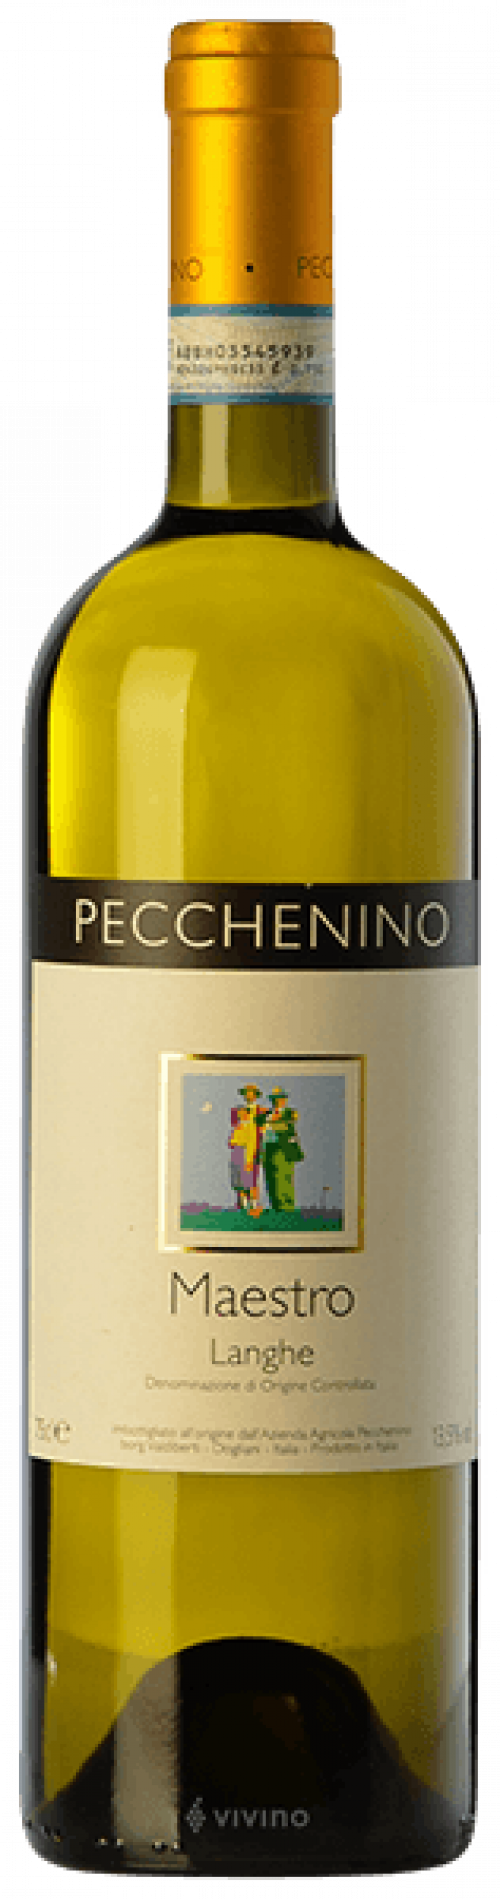 2017 Pecchenino Maestro White 750ml